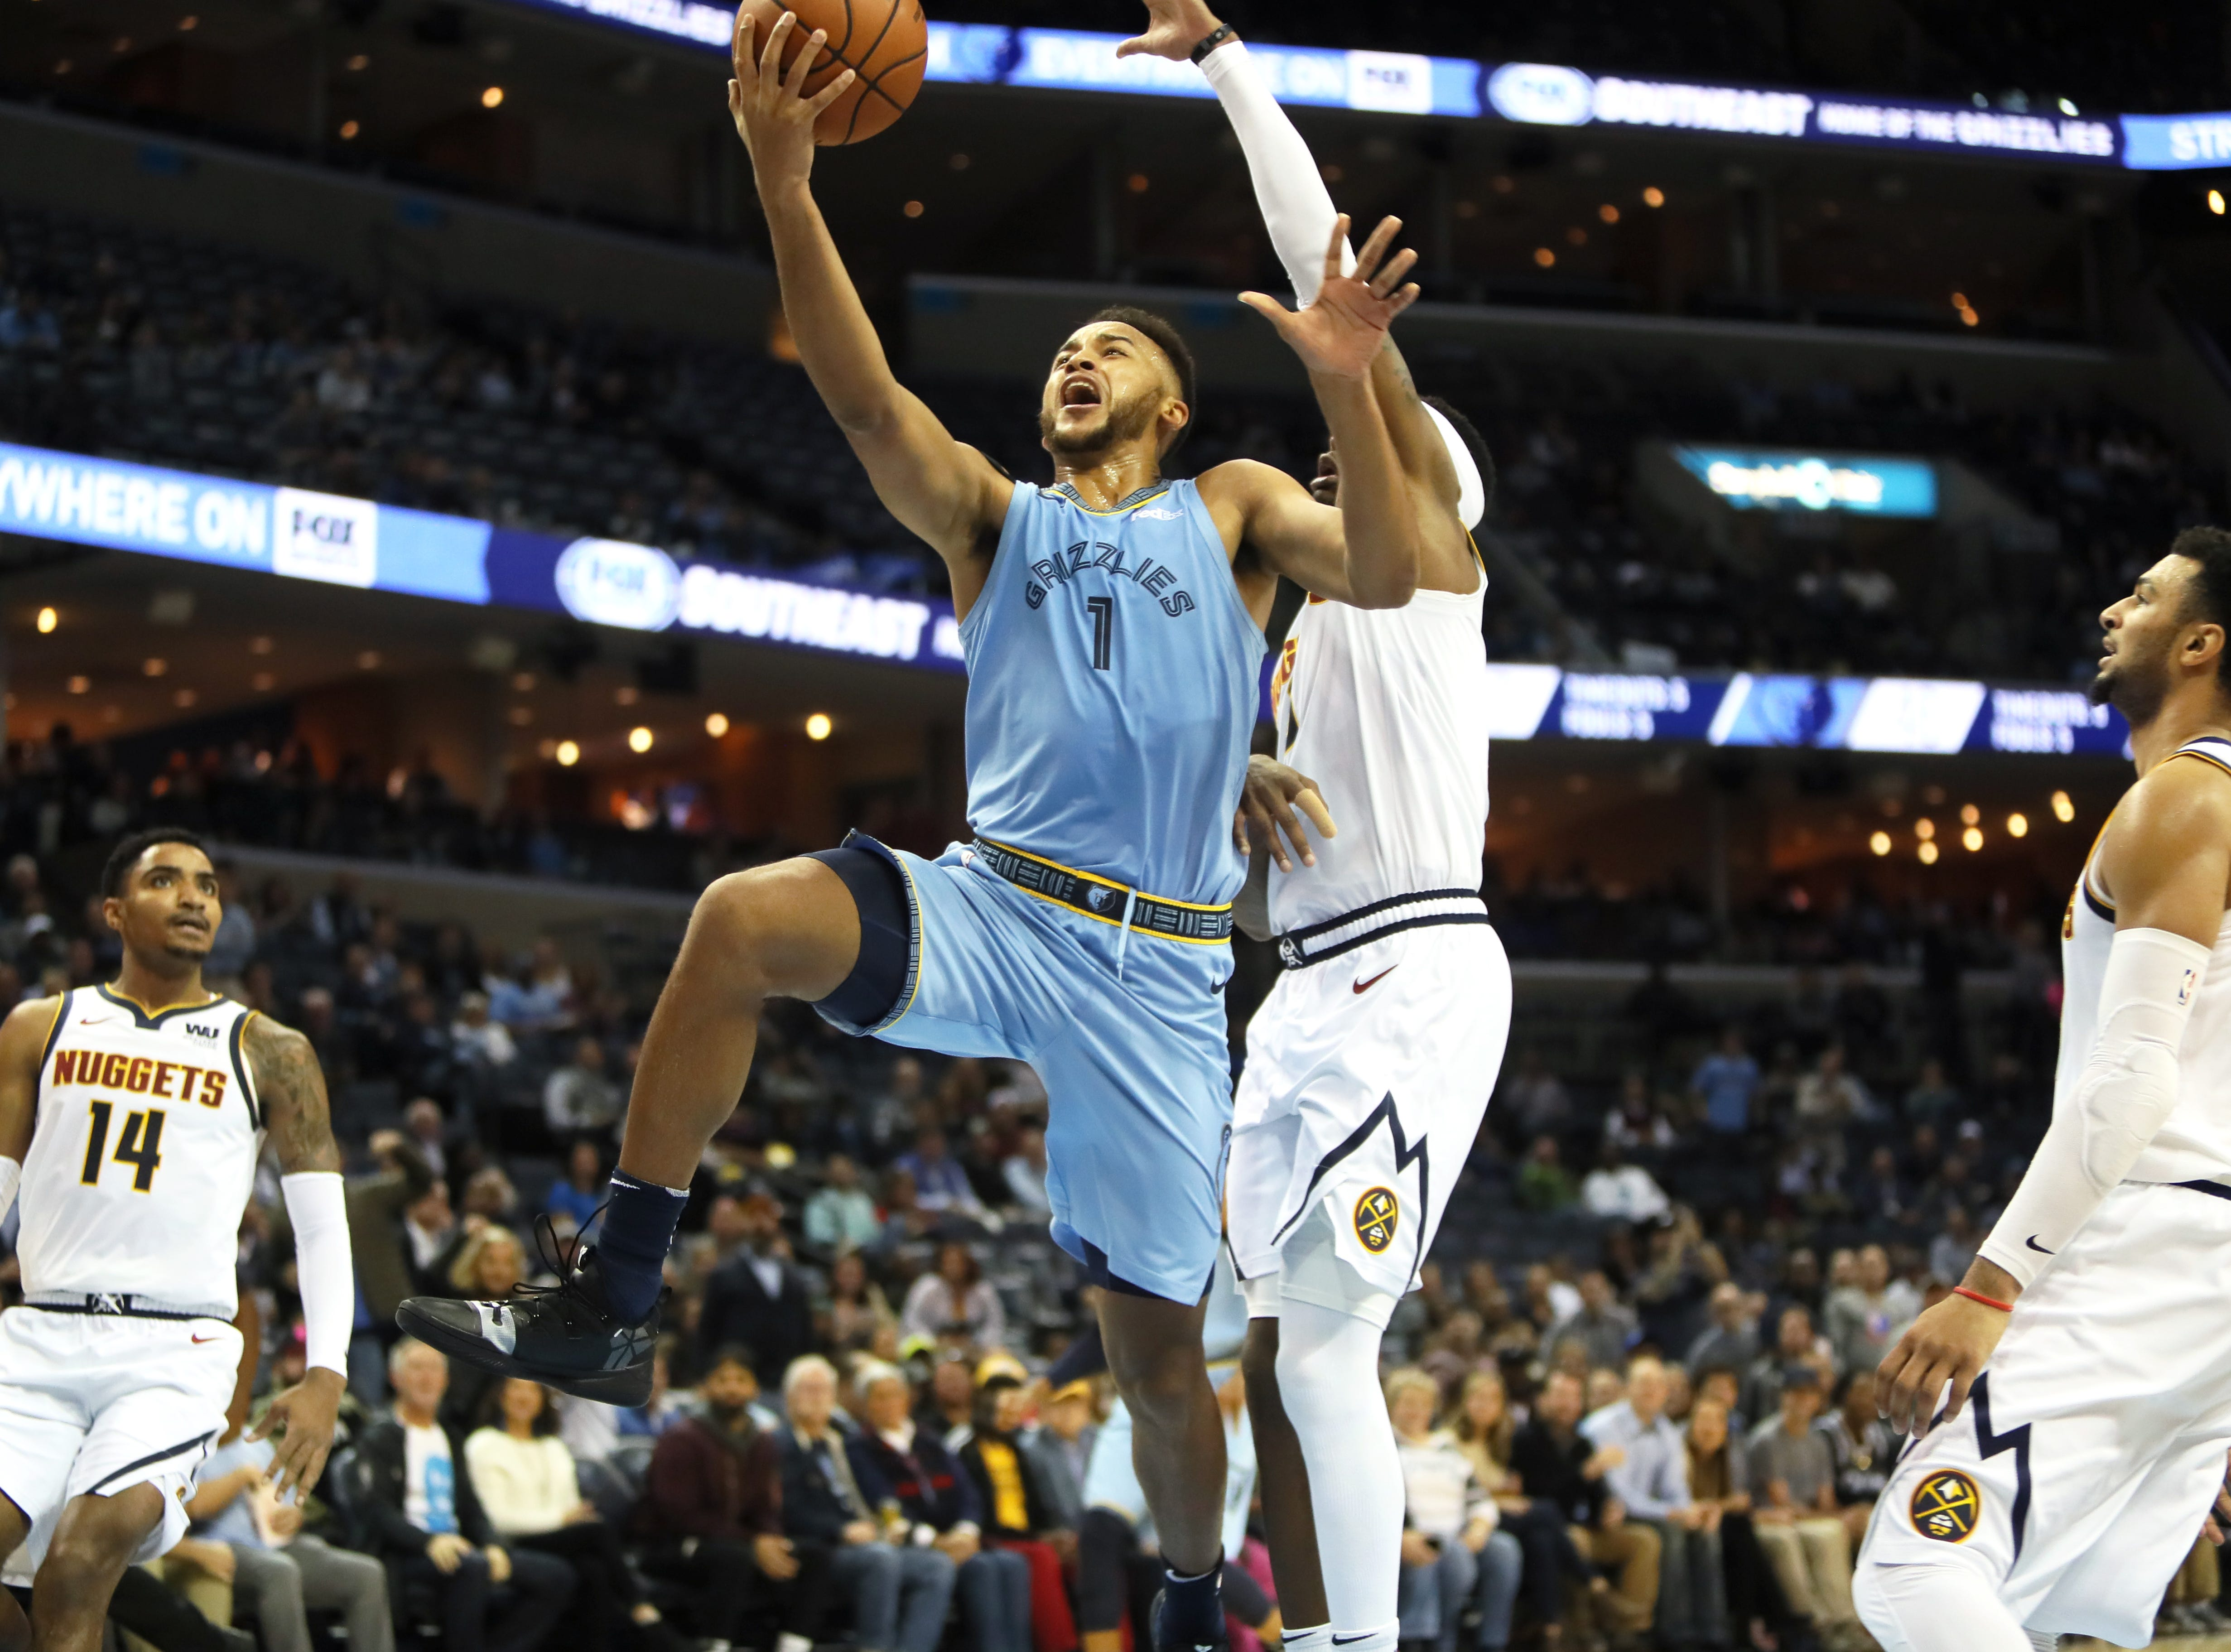 Memphis Grizzlies guard Ryan Anderson lays the ball up past Denver Nuggets forward Torrey Craig during their game at the FedExForum on Wednesday, November 7, 2018.